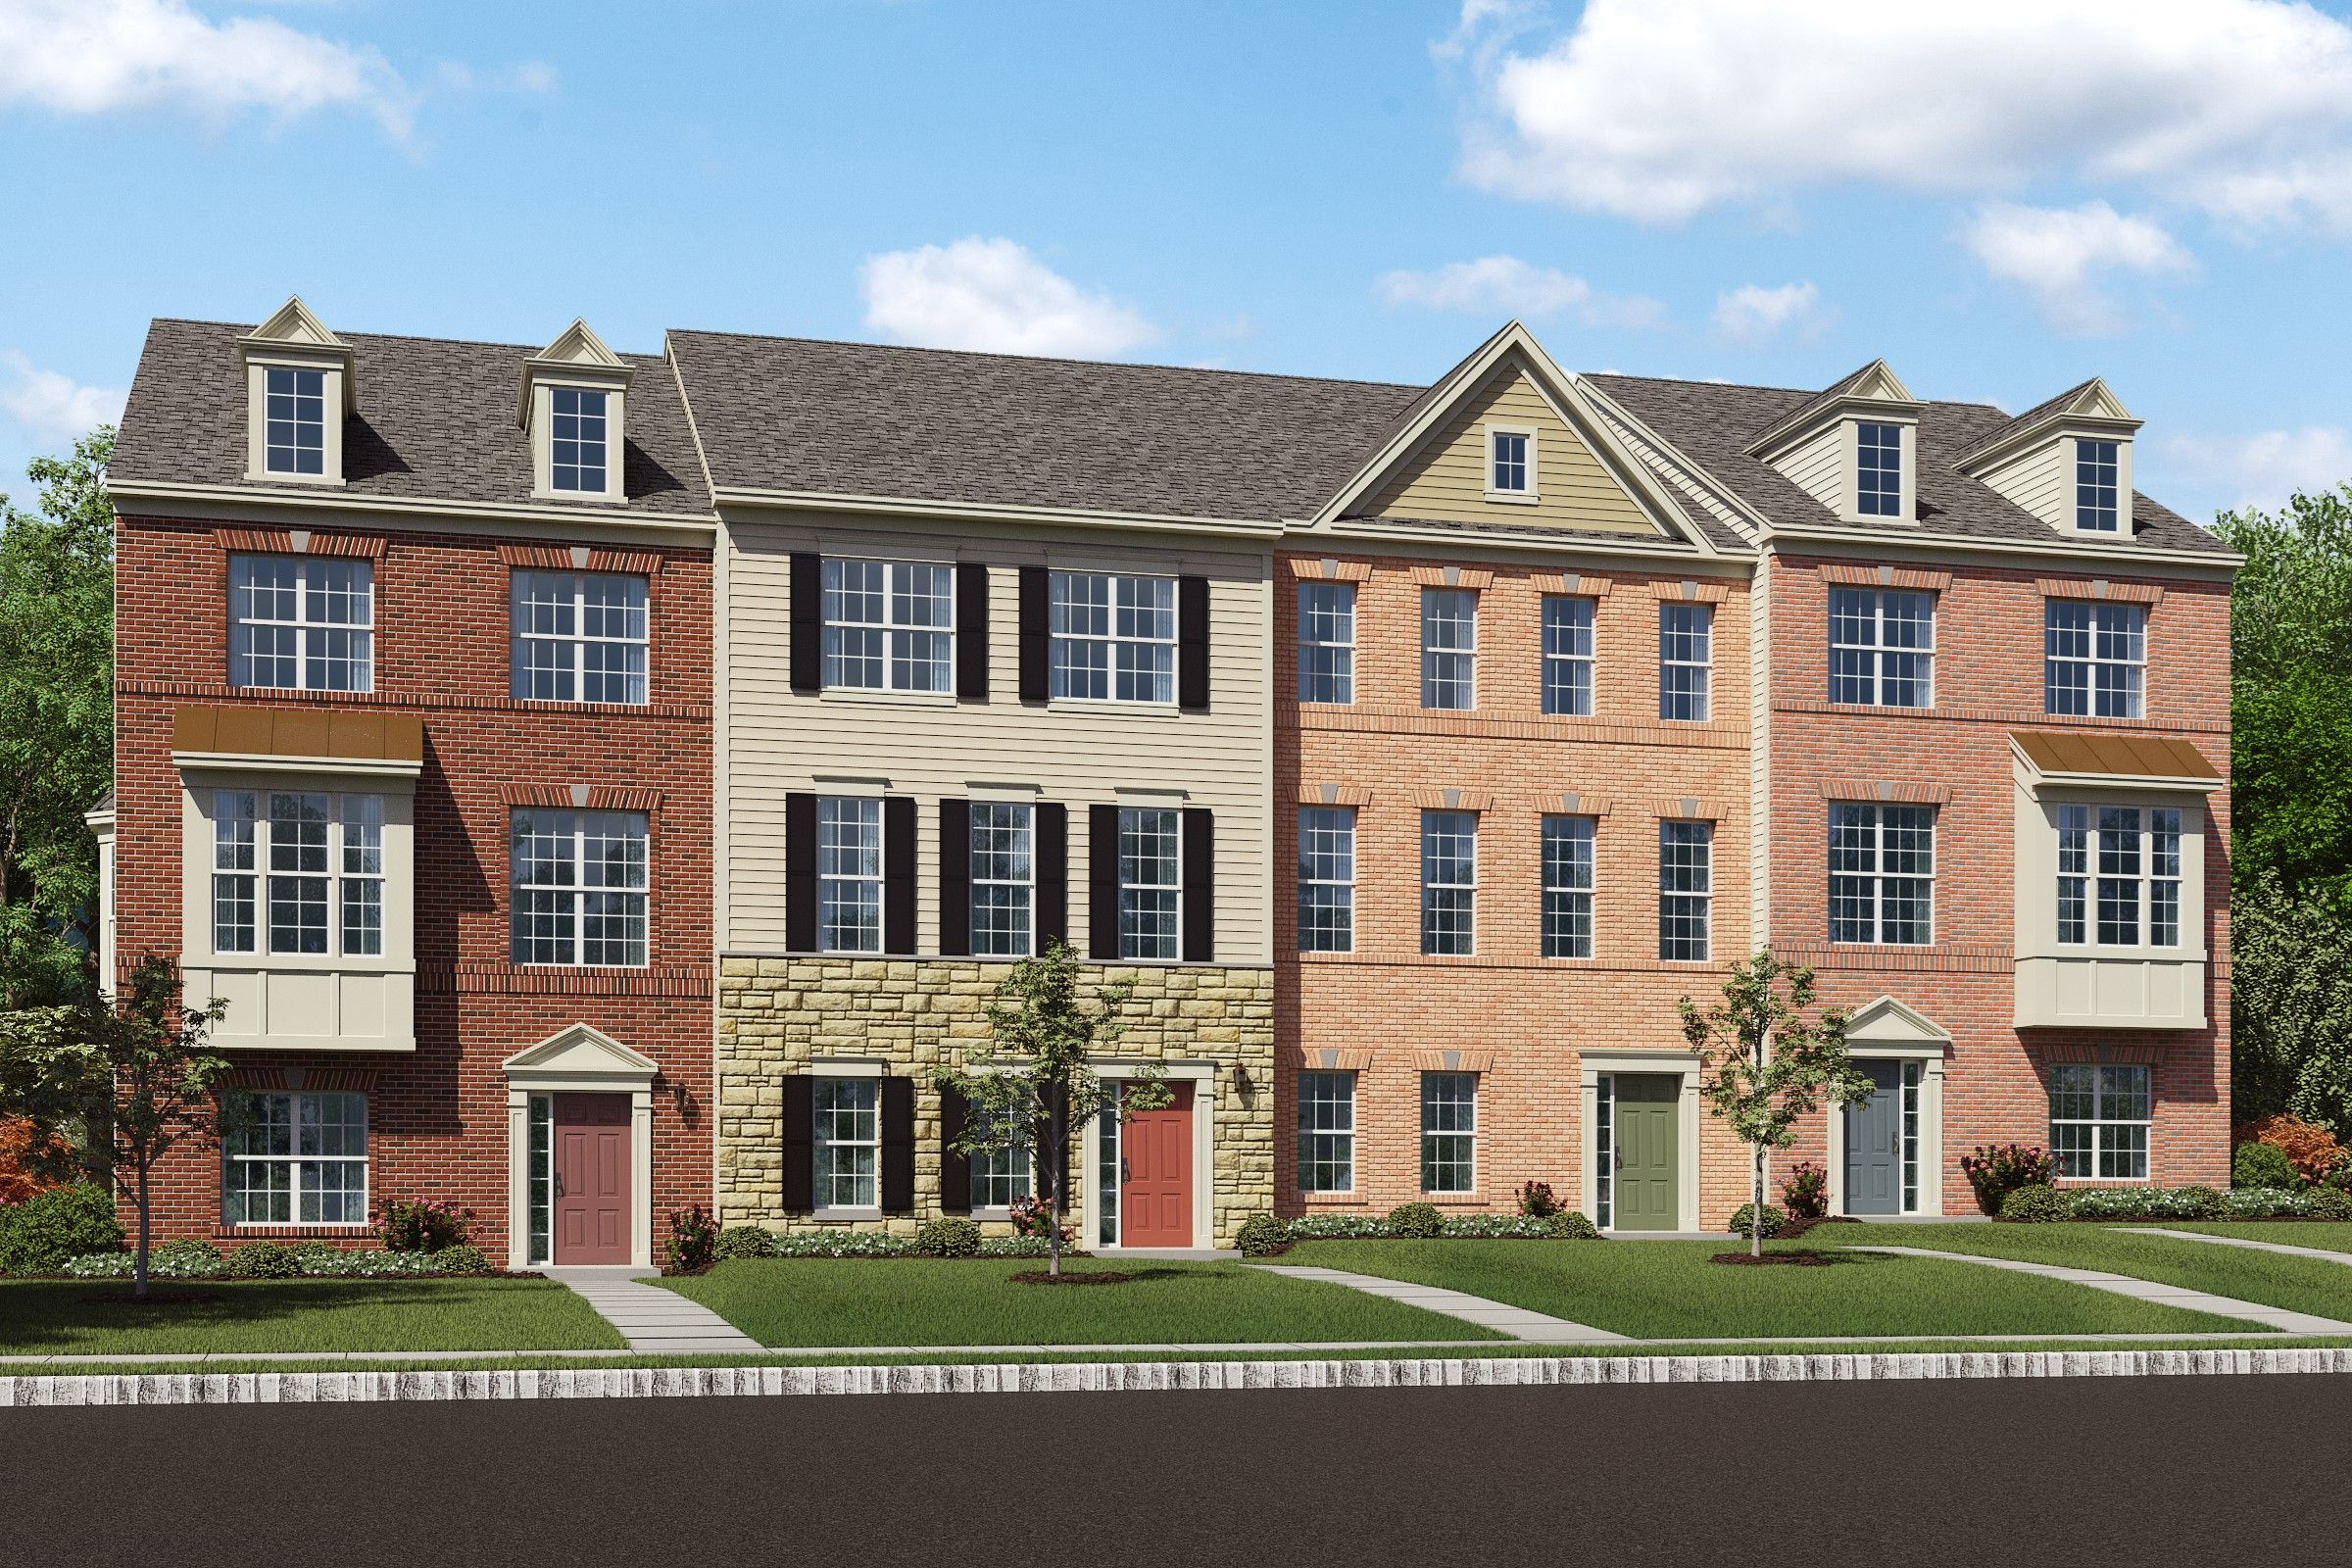 Multi Family for Sale at Montgomery 2104 St Joseph Drive, Homesite 3d Mitchellville, Maryland 20721 United States